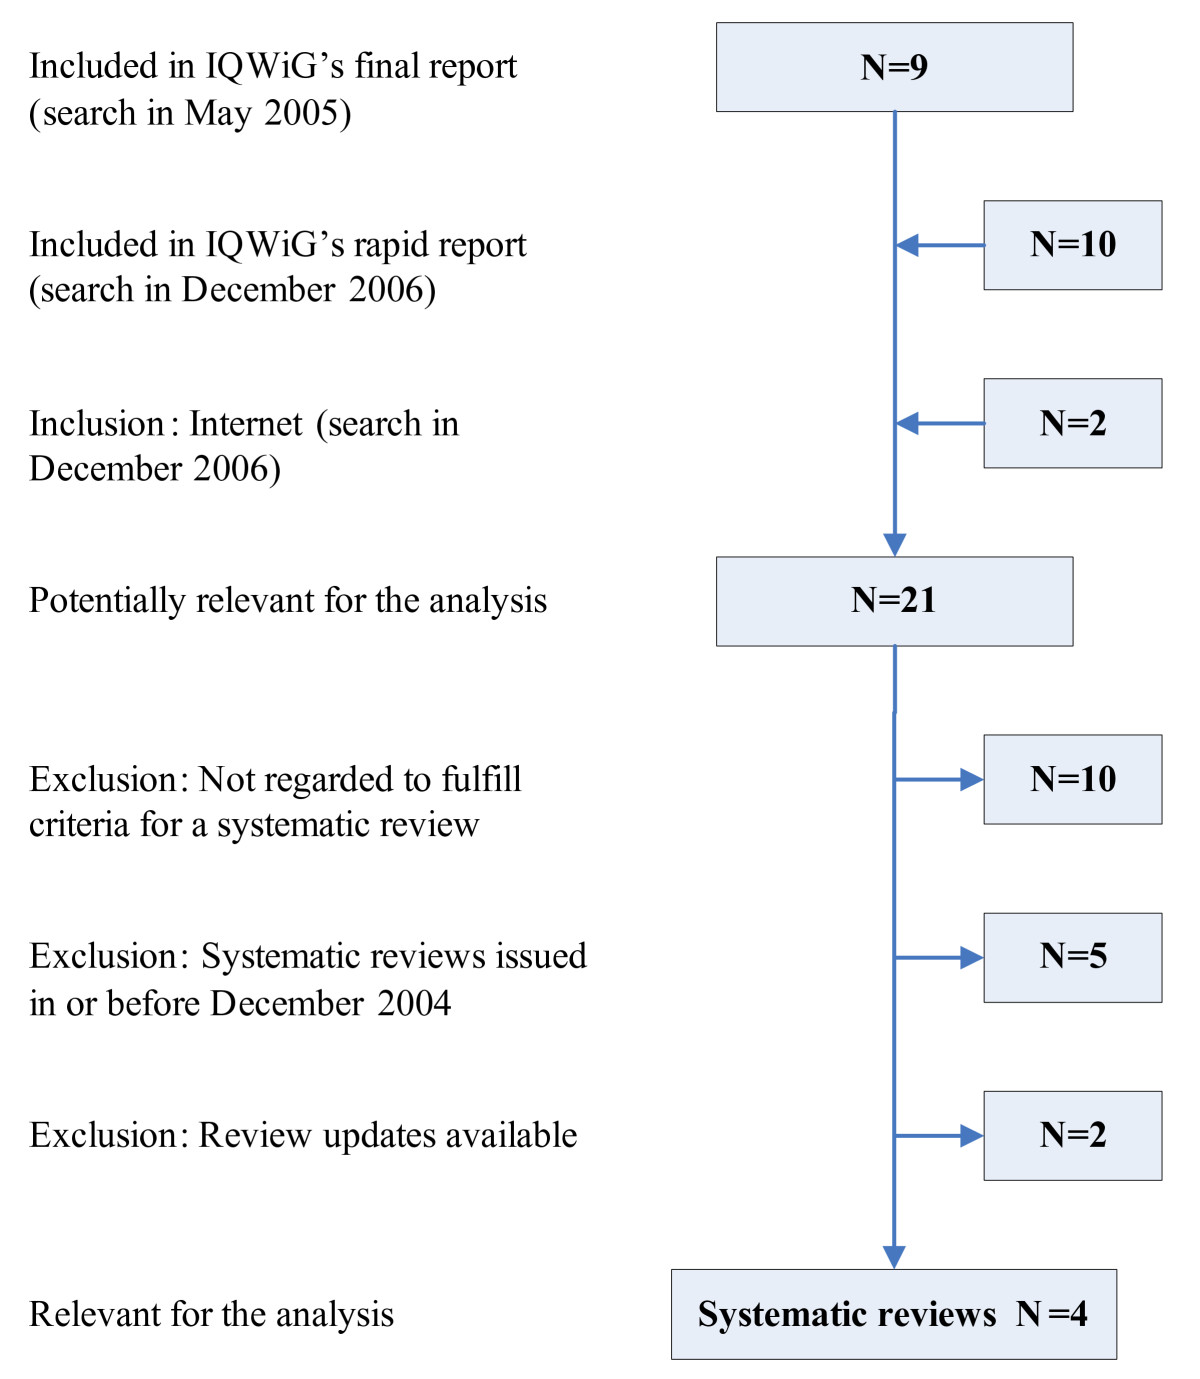 http://static-content.springer.com/image/art%3A10.1186%2F1471-2288-8-41/MediaObjects/12874_2008_Article_277_Fig1_HTML.jpg